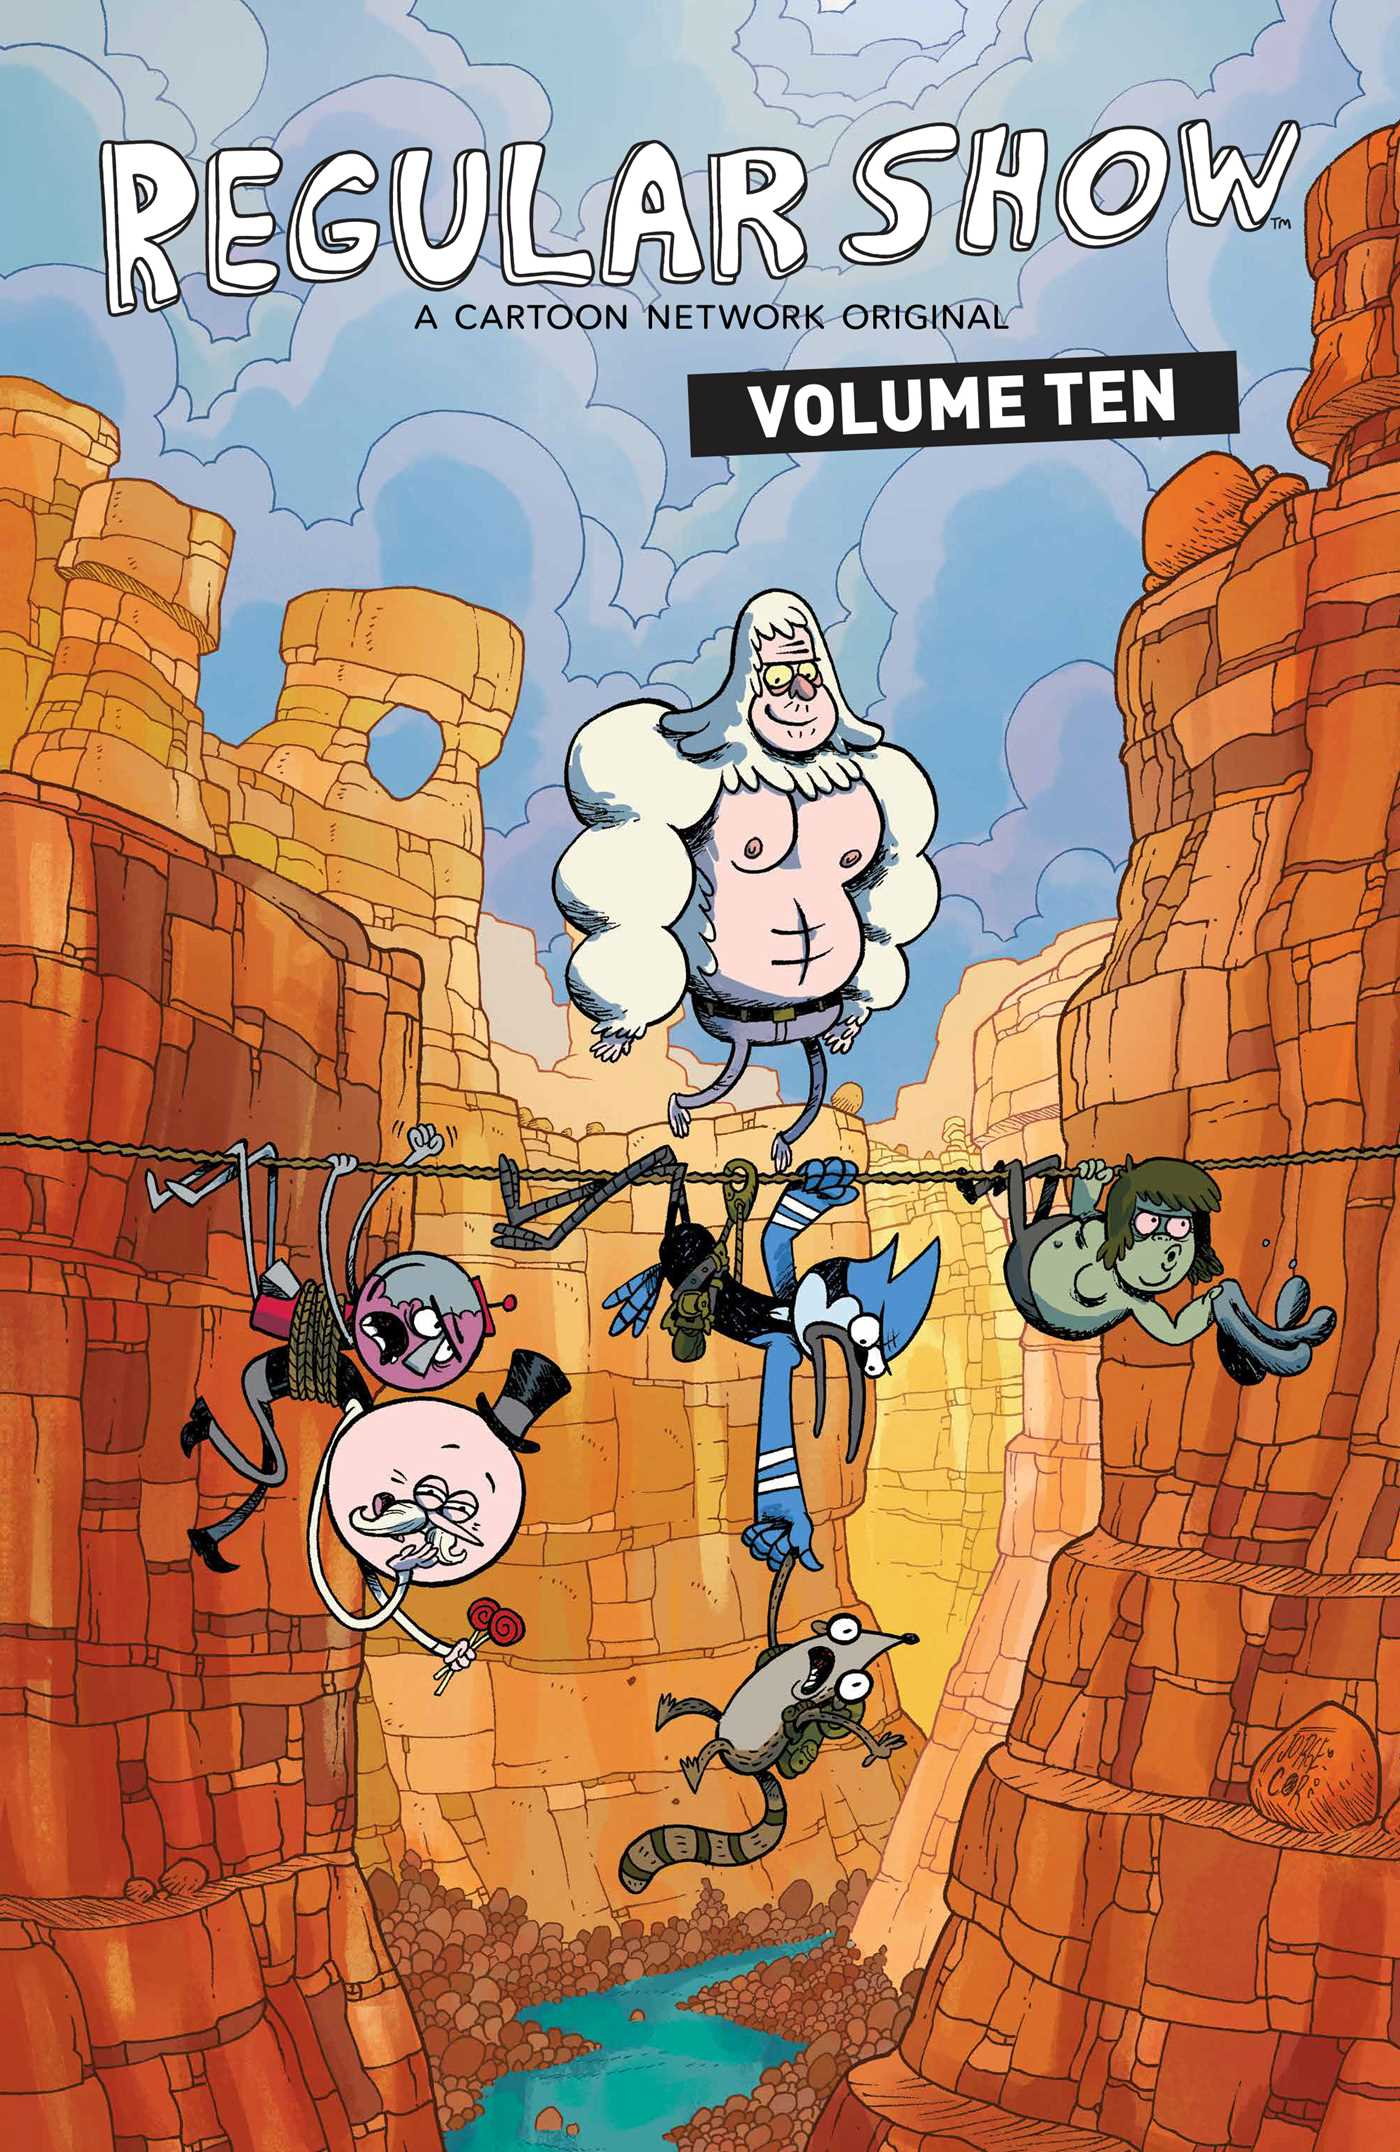 Fiction Publisher Regular Show Vol. 10 | Book By Mad Rupert, Laura Howell